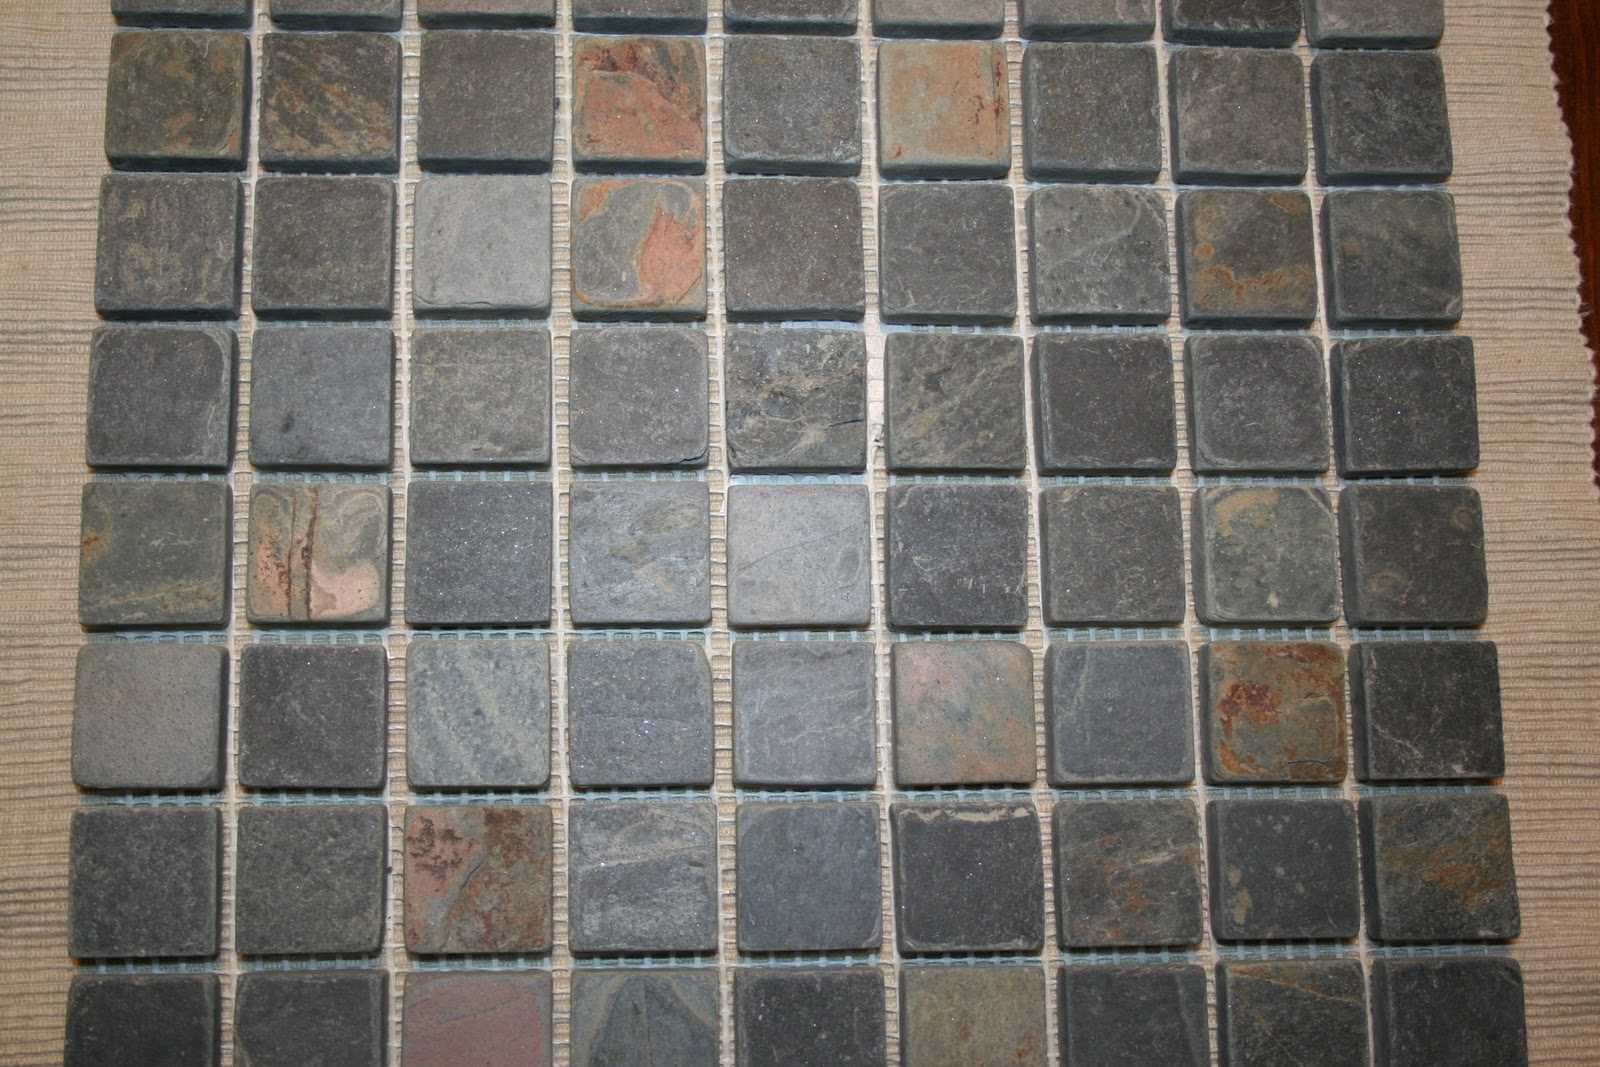 Another 100 year old house renovation: Tile shopping